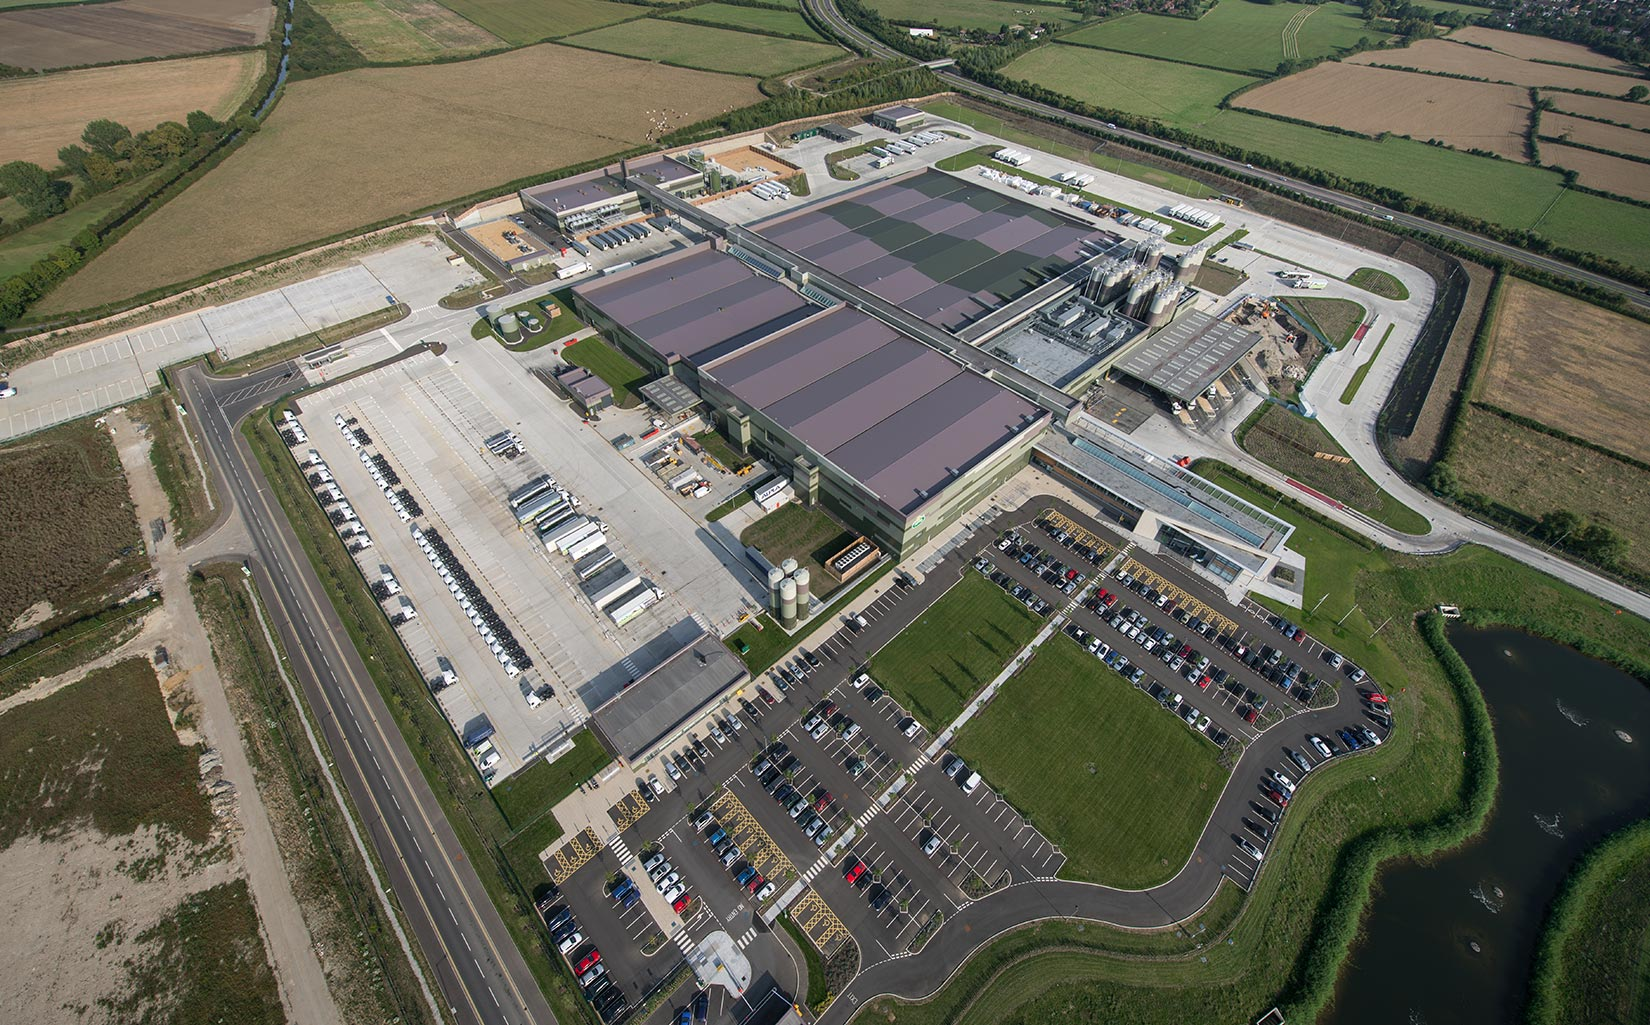 Arla Foods Dairy, Aylesbury, Aerial of the completed dairy